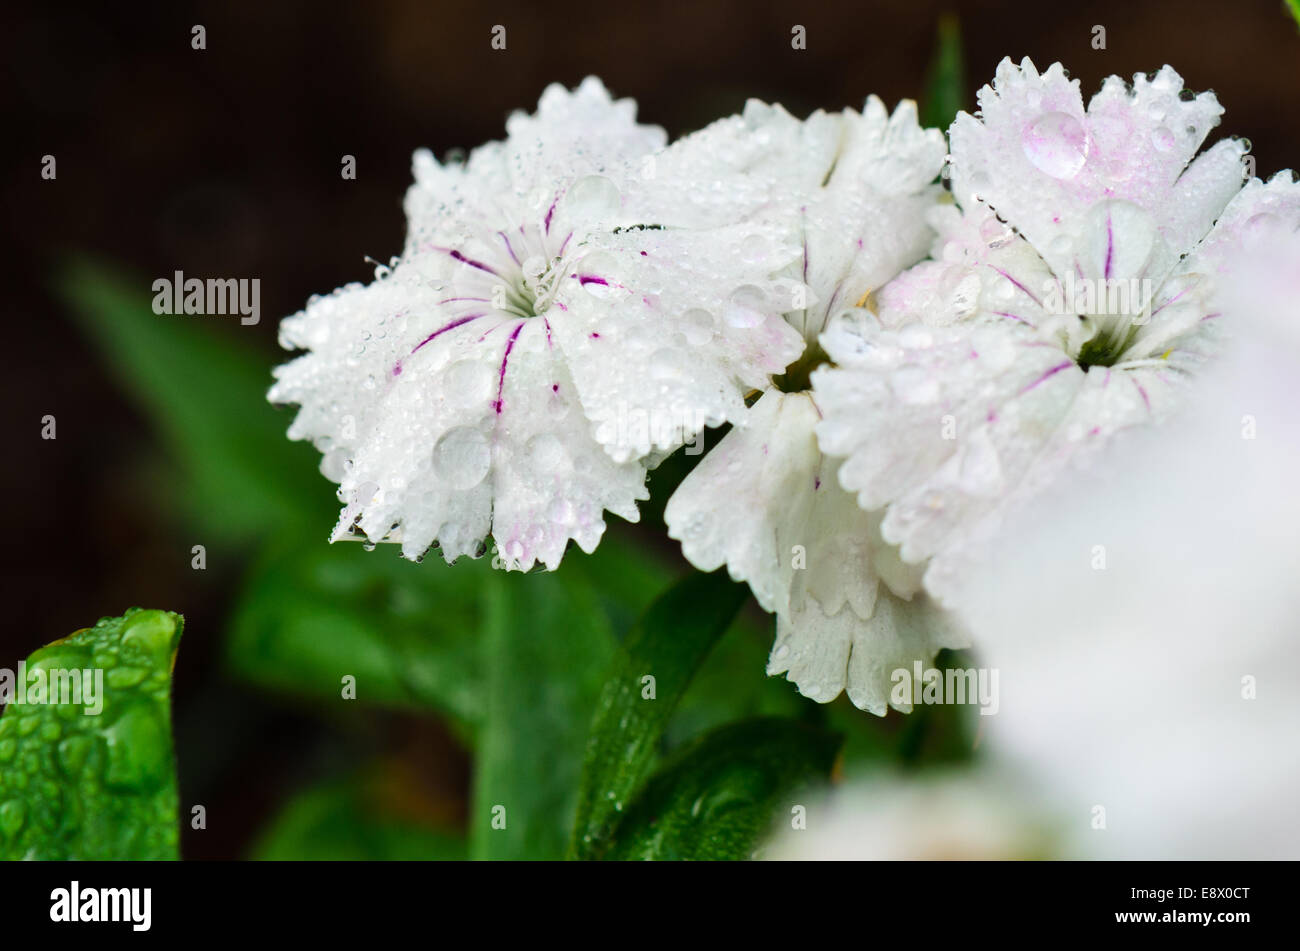 Close up white dianthus or sweet william flowers filled with dew close up white dianthus or sweet william flowers filled with dew drops mightylinksfo